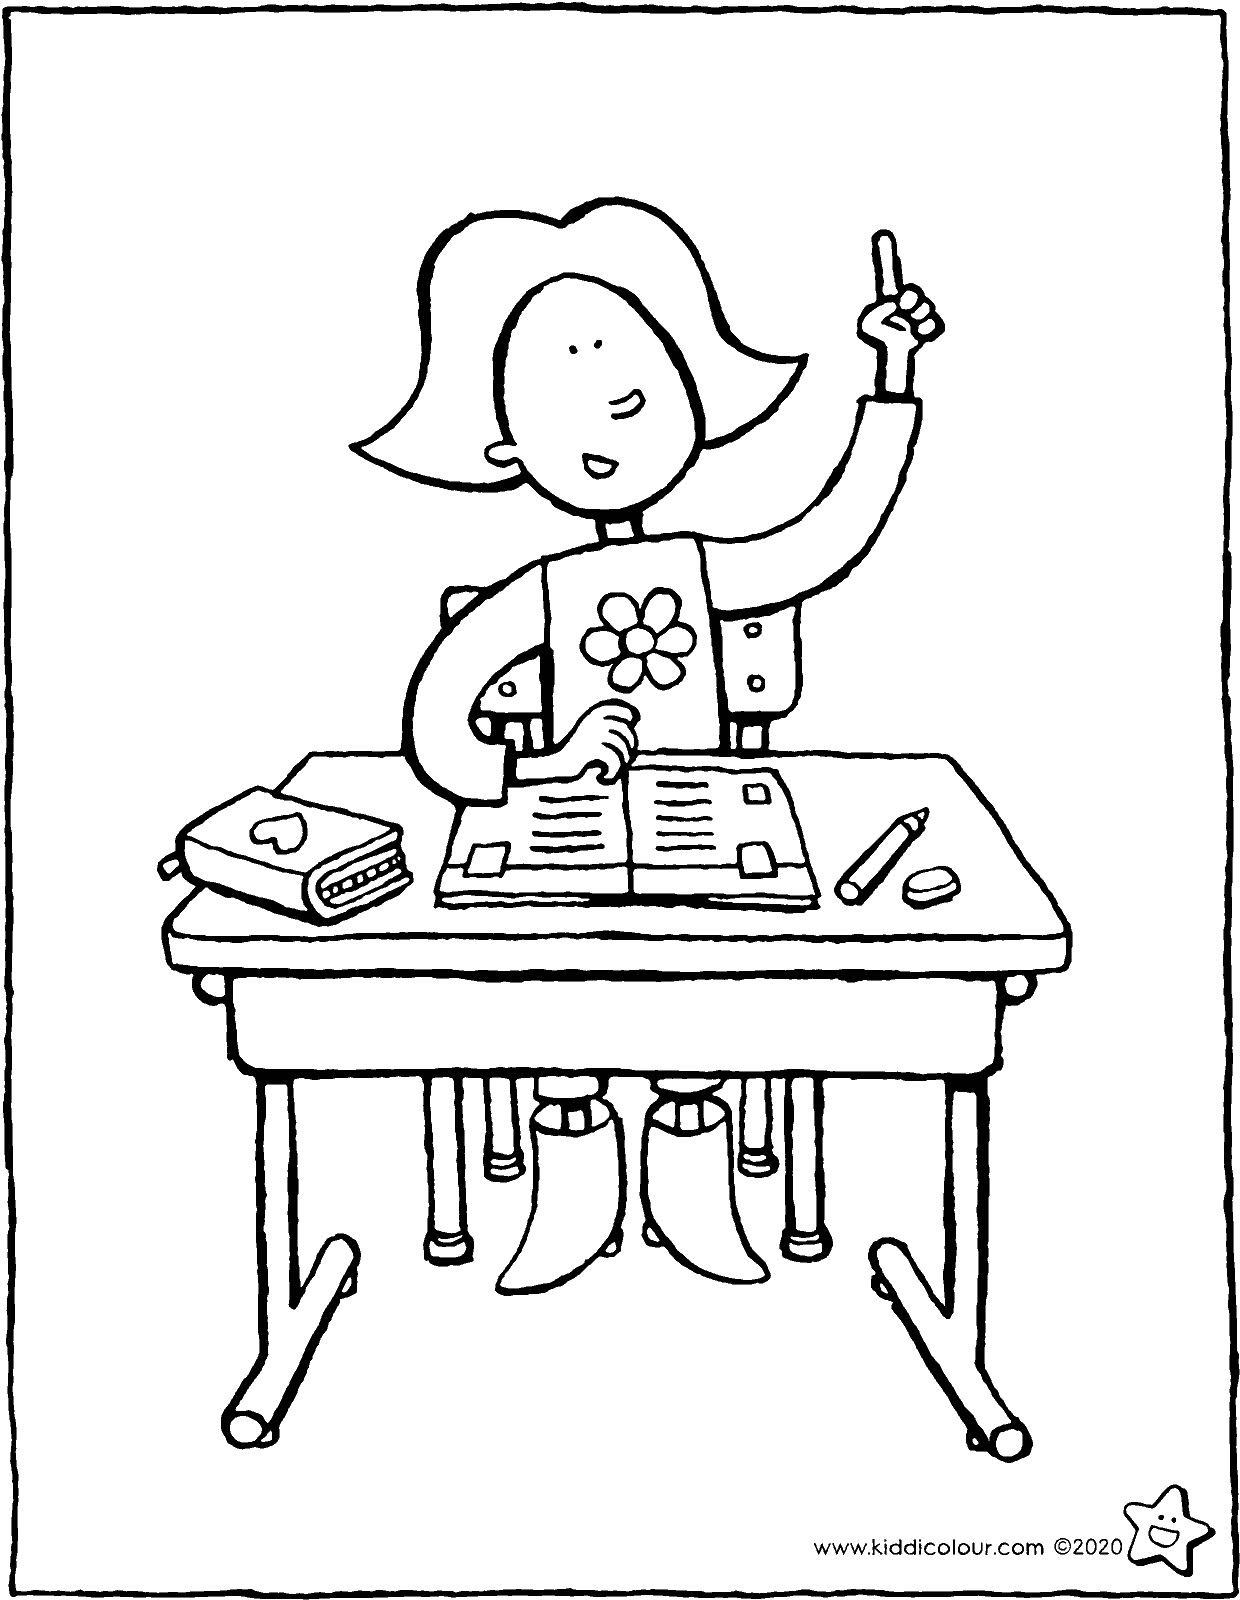 school desk coloring pages emma at her school desk kiddicolour pages coloring school desk